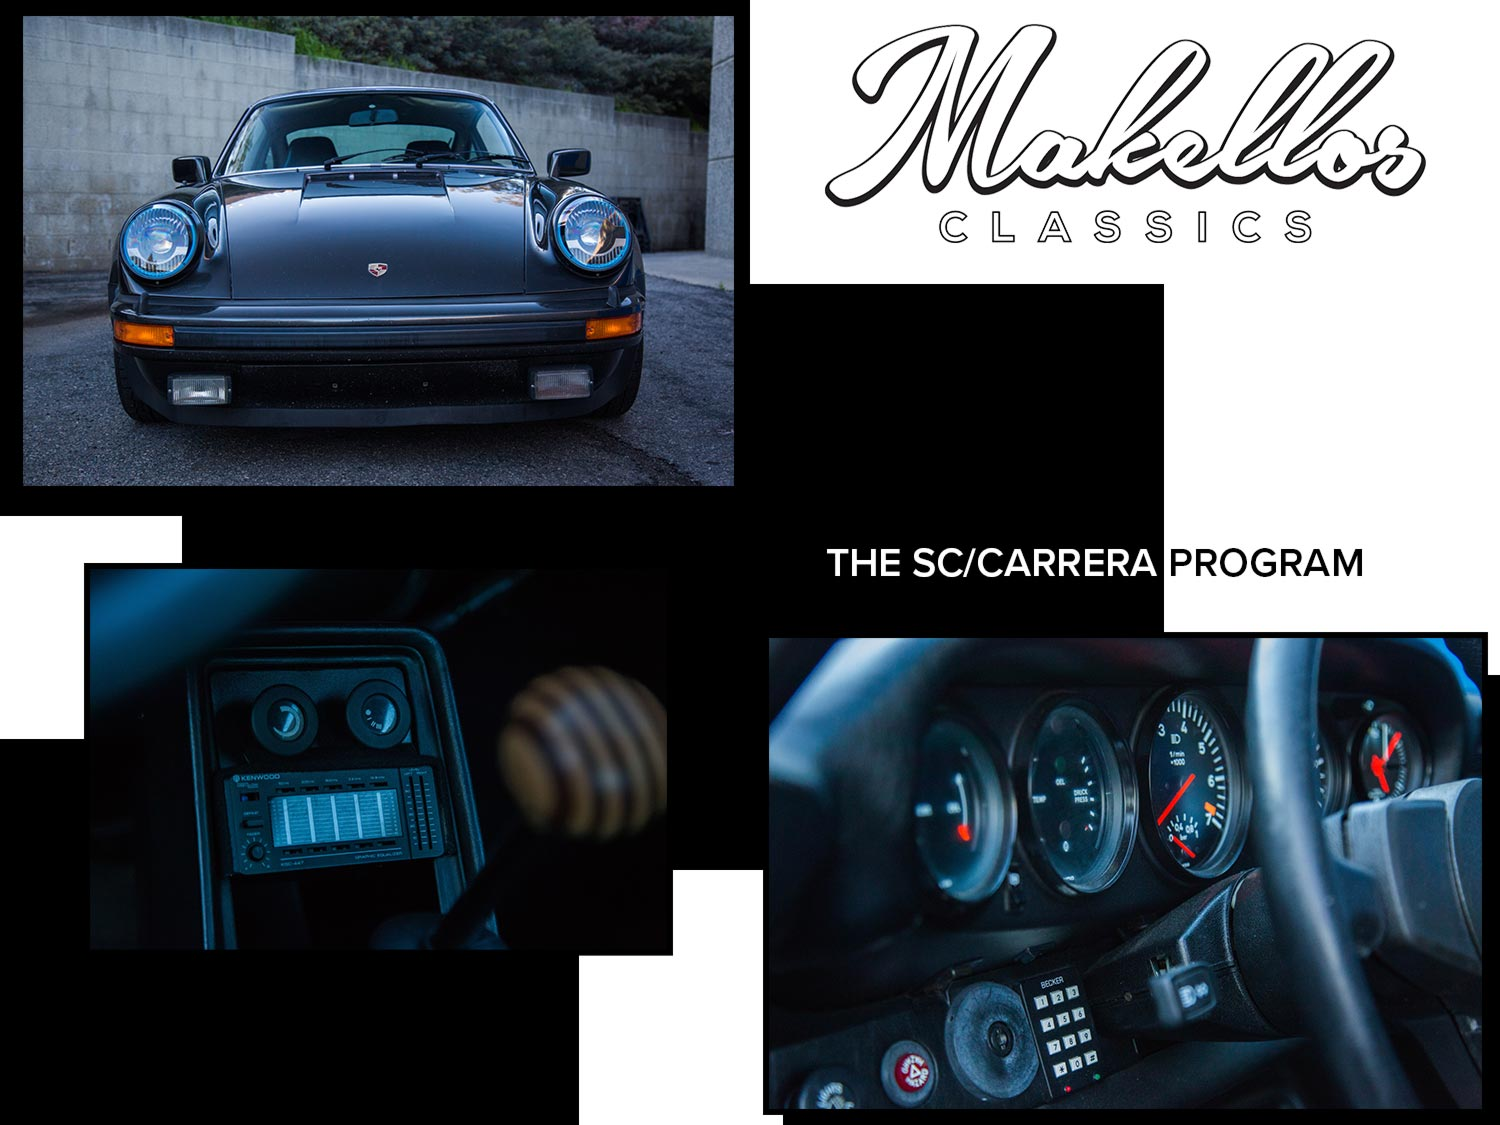 Makellos-Classics-Custom-Build-SC-Carrera-Program.jpg